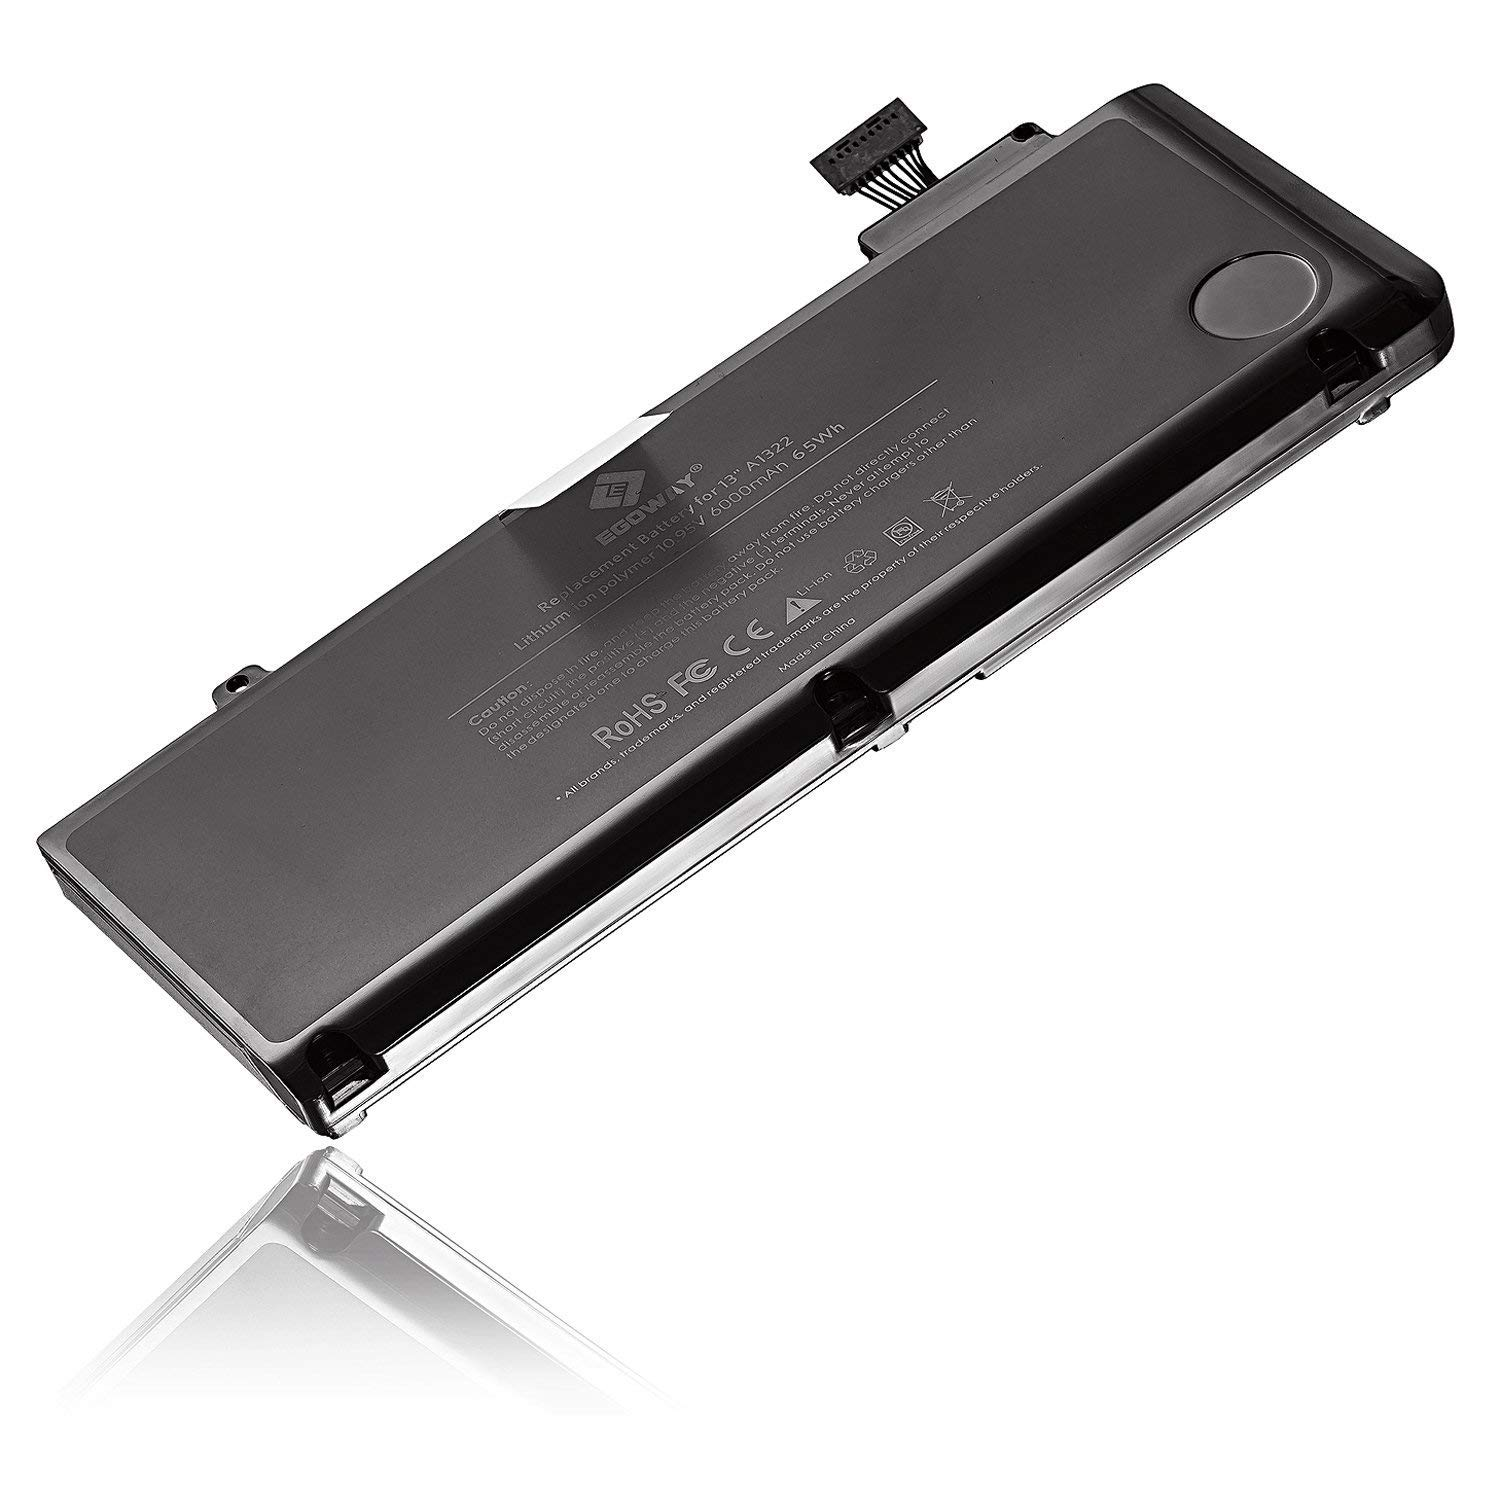 E EGOWAY Laptop Battery (10.95V 6000mAh) Replacement for MacBook Pro 13 Inch A1322 A1278 by E EGOWAY (Image #2)